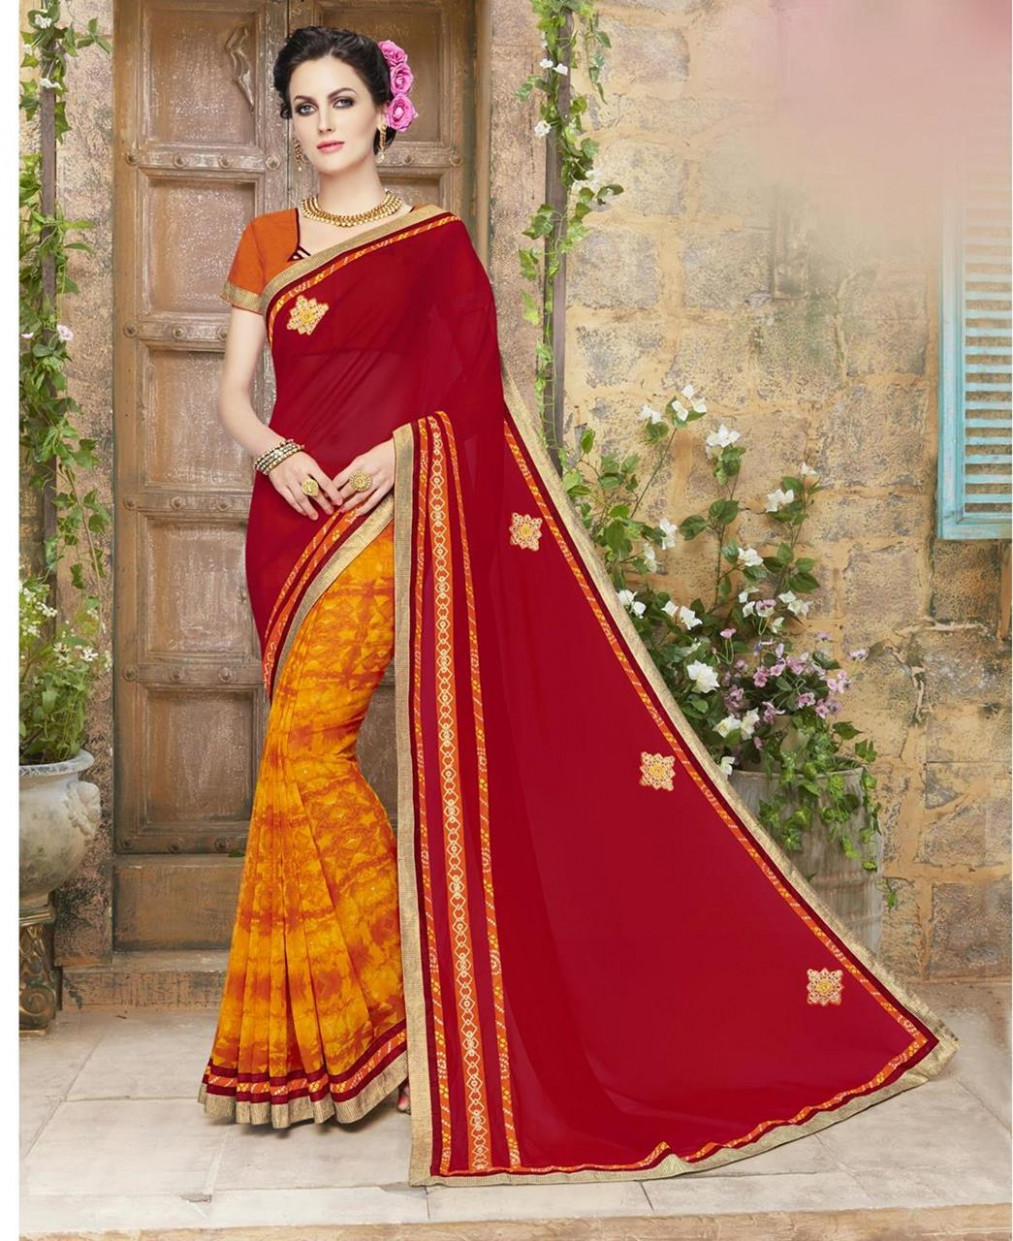 Buy Nice Red & Orange Casual Saree [105746] at 29.92 (AUD)